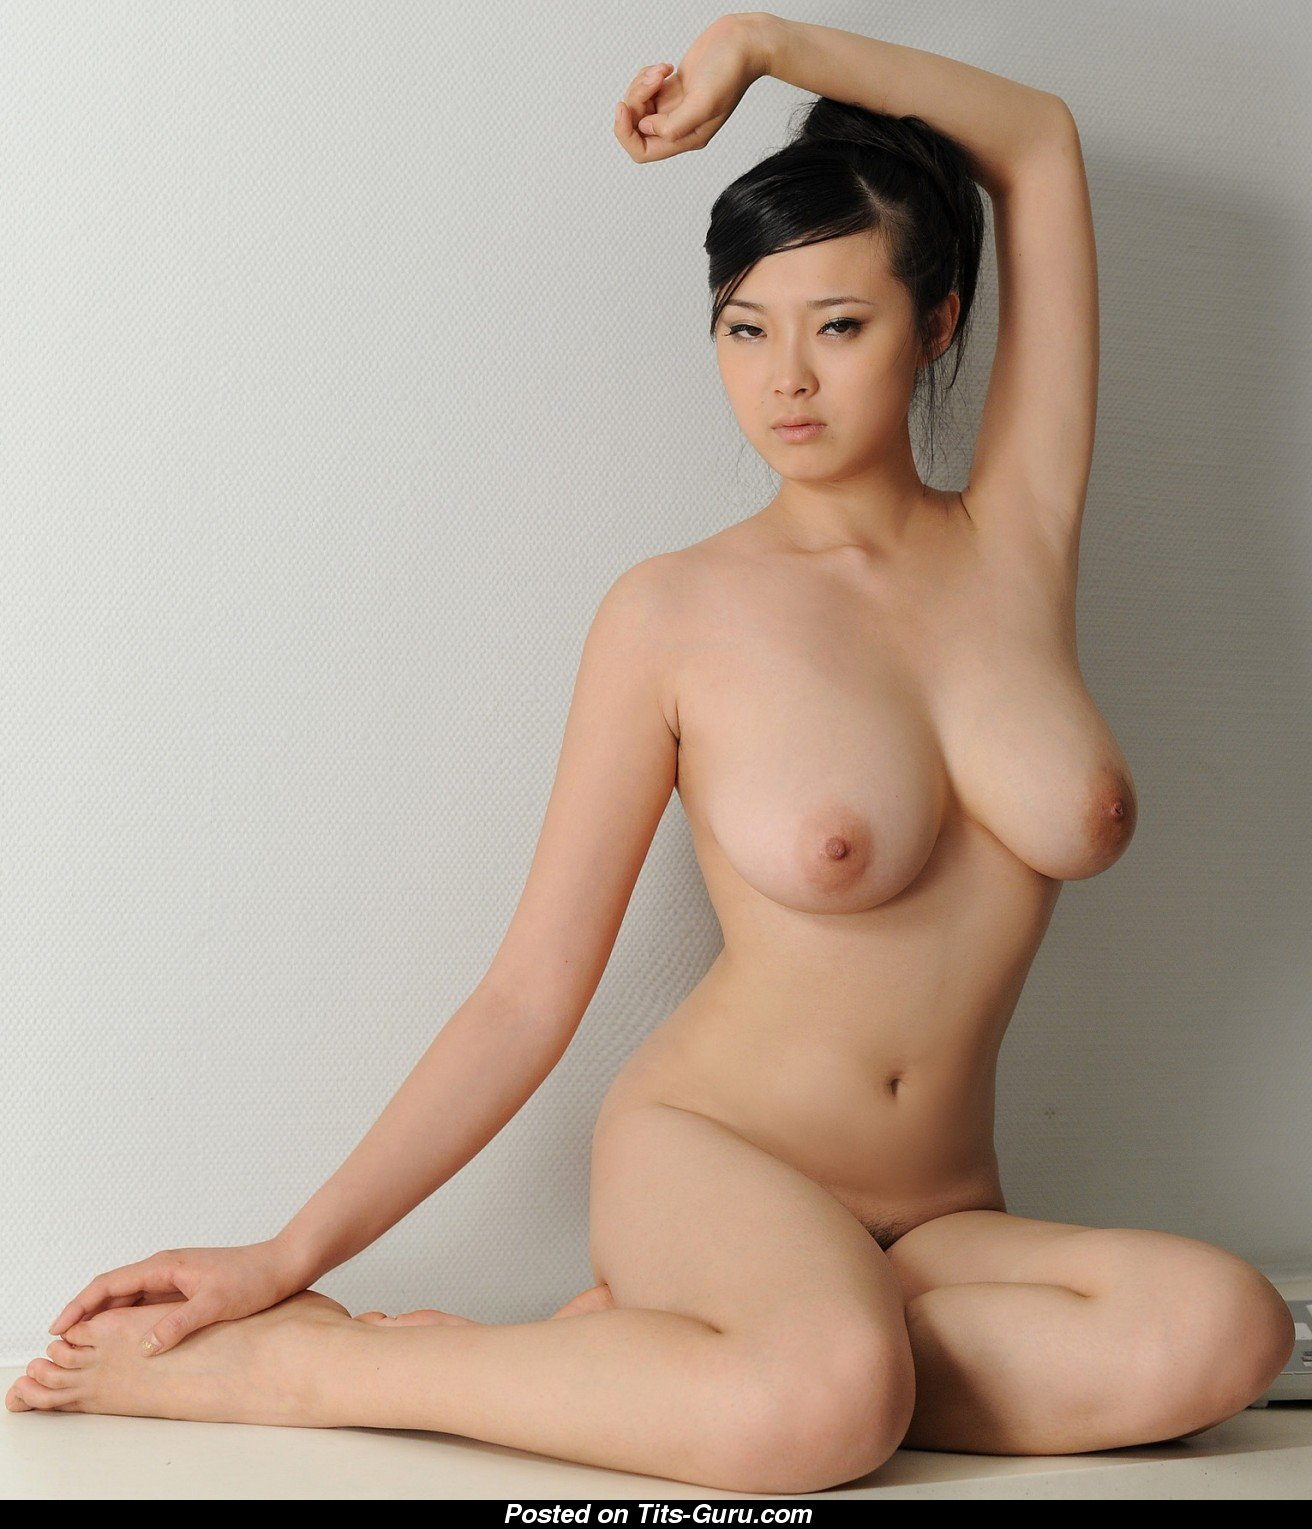 Bing Yi - Asian Dame With Defenseless Natural Firm Titties Sexual Photo 04112015 073146-5319